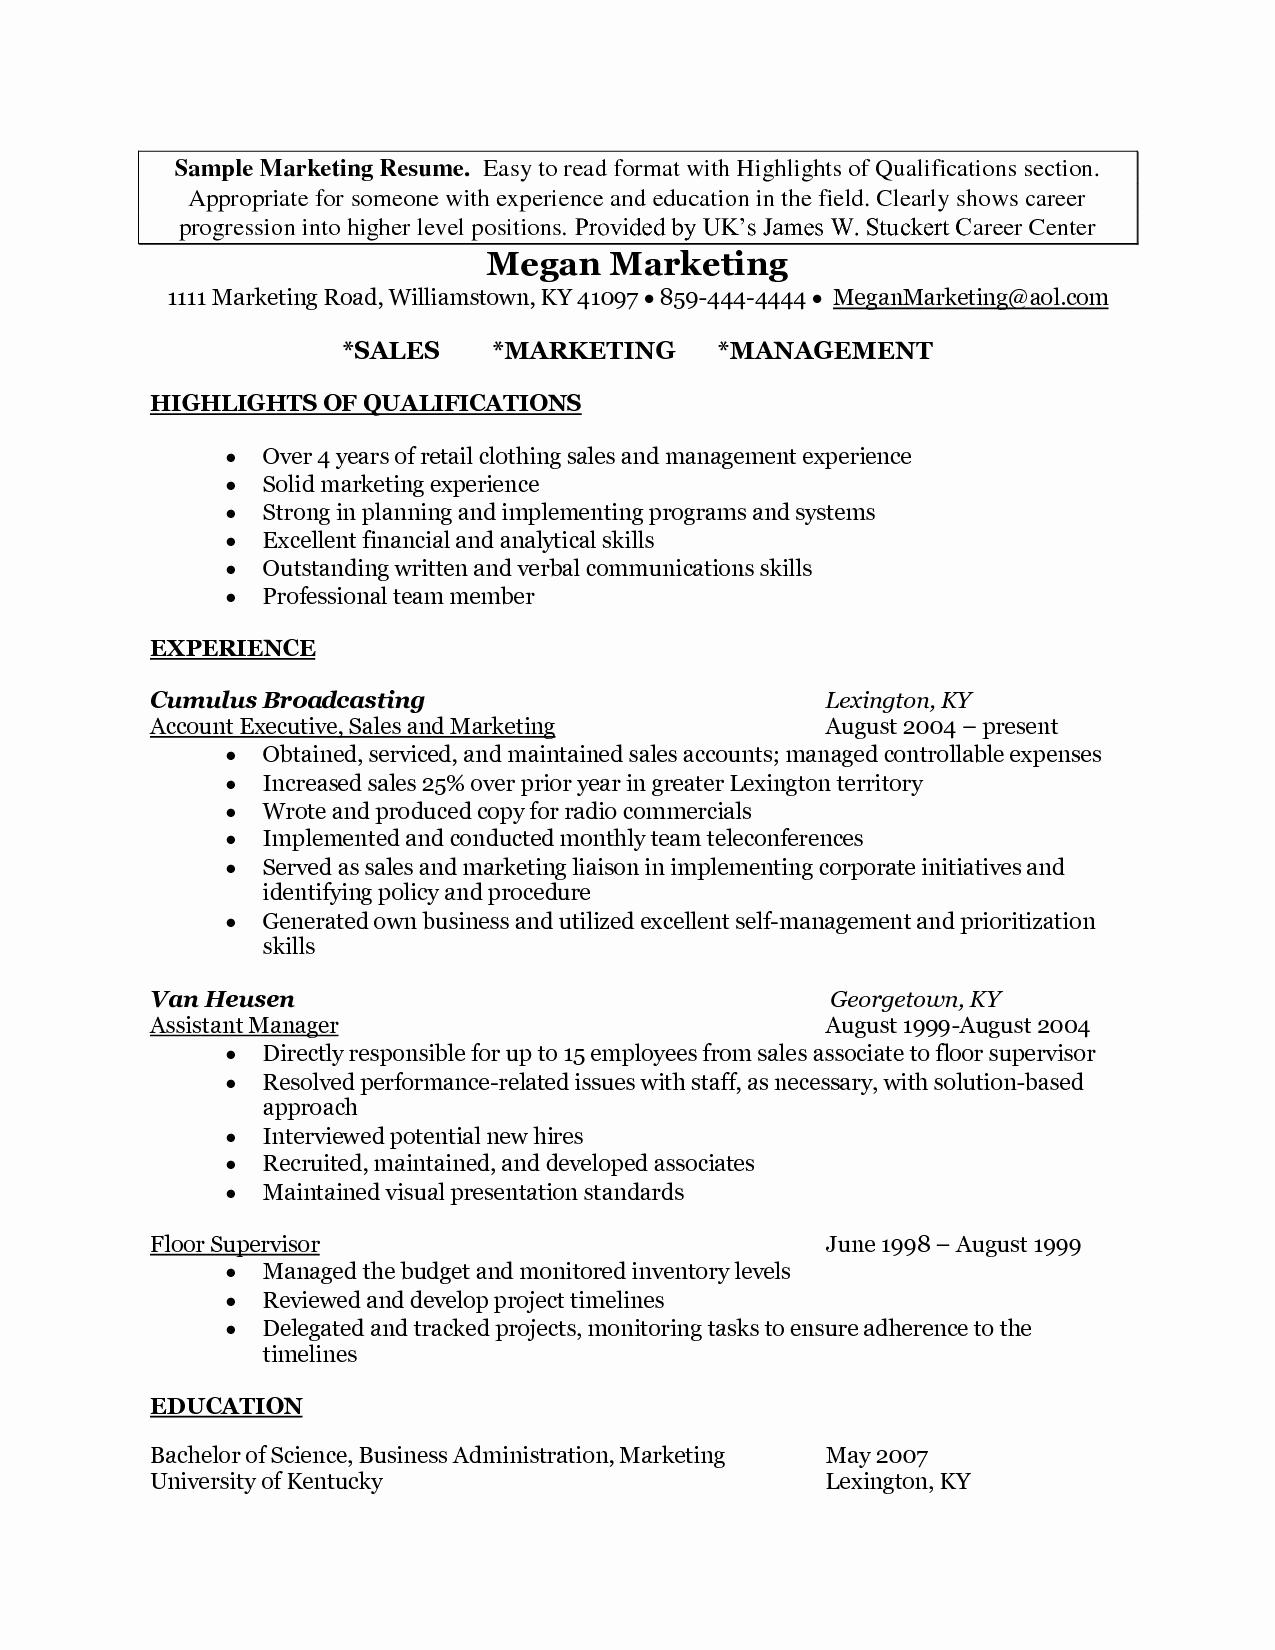 accounting resume summary examples Collection-Example Resume Summary Fresh Inspirational Grapher Resume Sample Beautiful Resume Quotes 0d 20-k